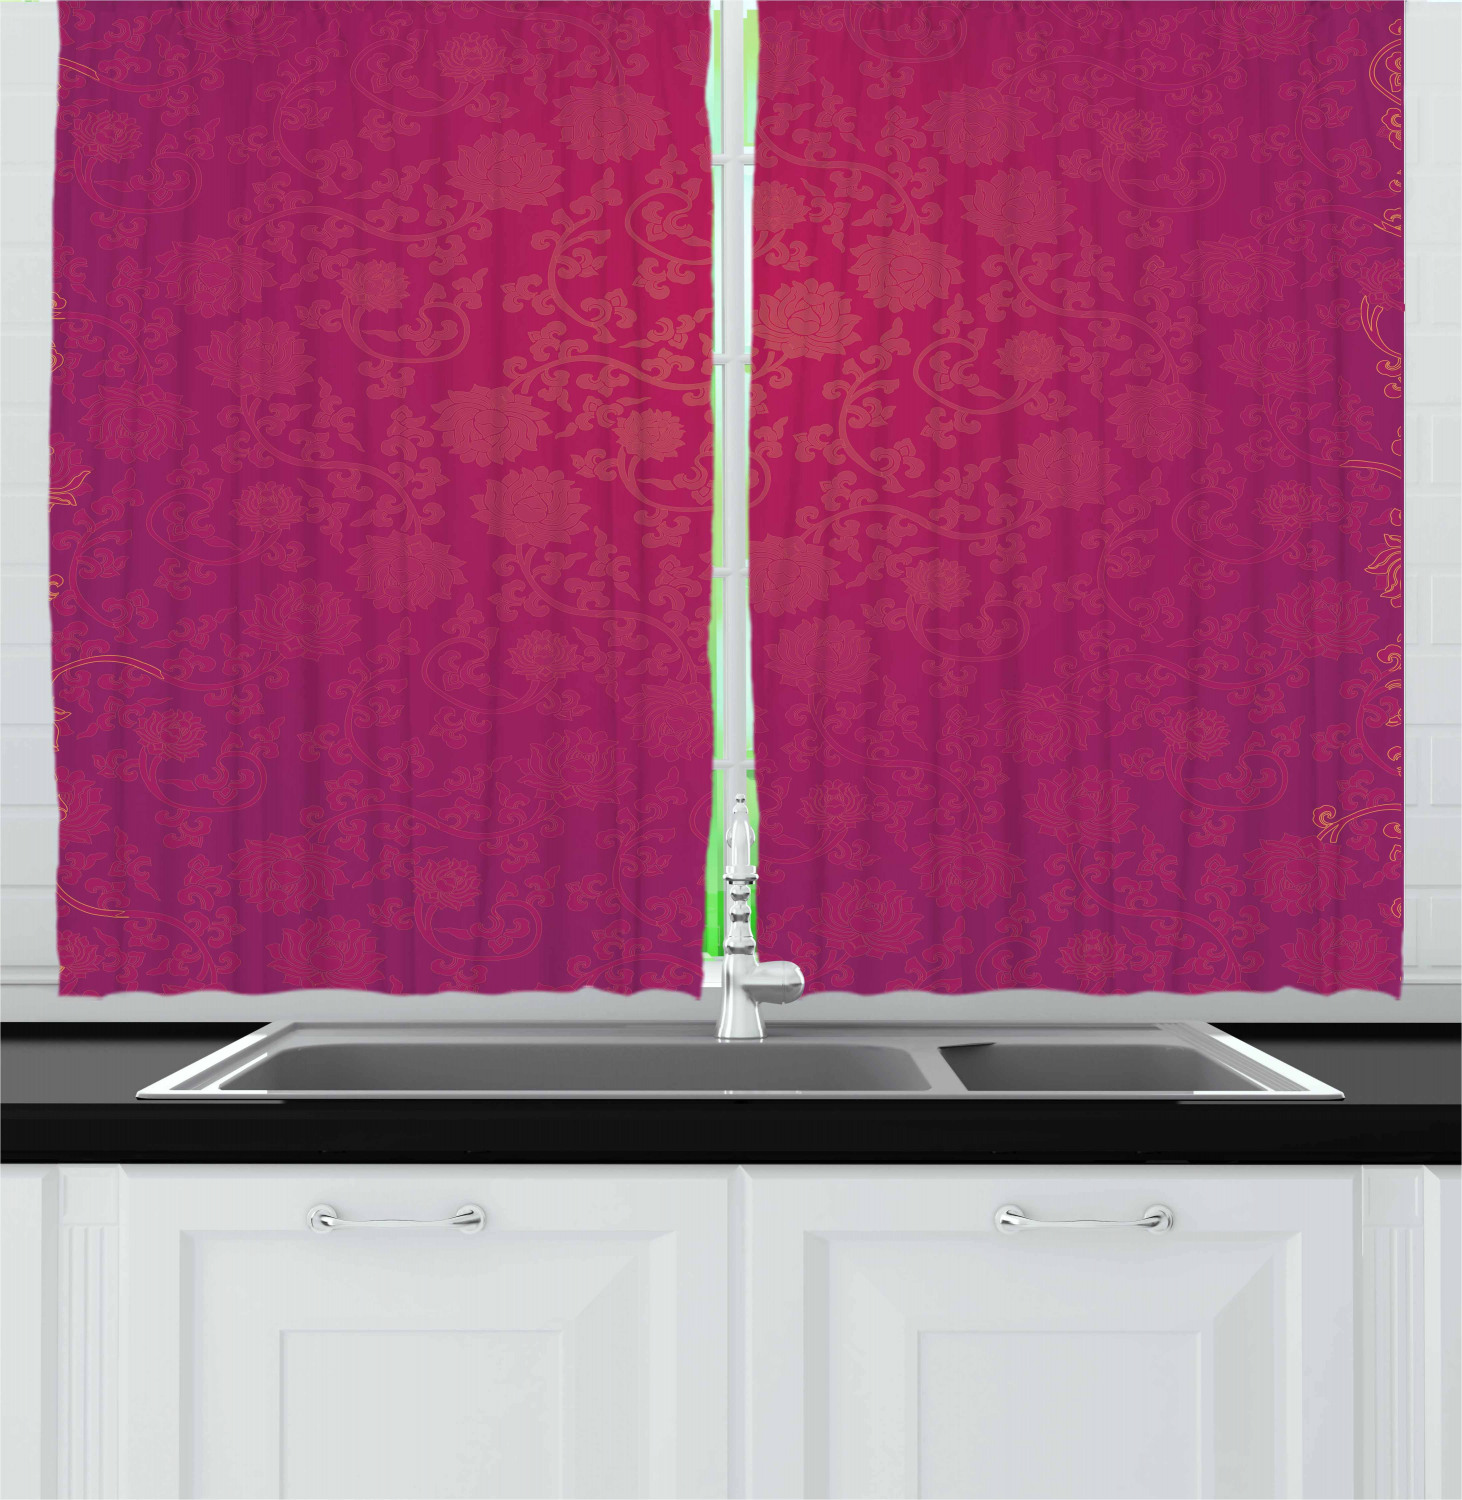 Chinese New Year Curtains 2 Panels Set Ornamental Lotus Flower Pattern Blooming East Asian Foliage Window Drapes For Living Room Bedroom 55w X 39l Inches Orange Violet And Pink By Ambesonne